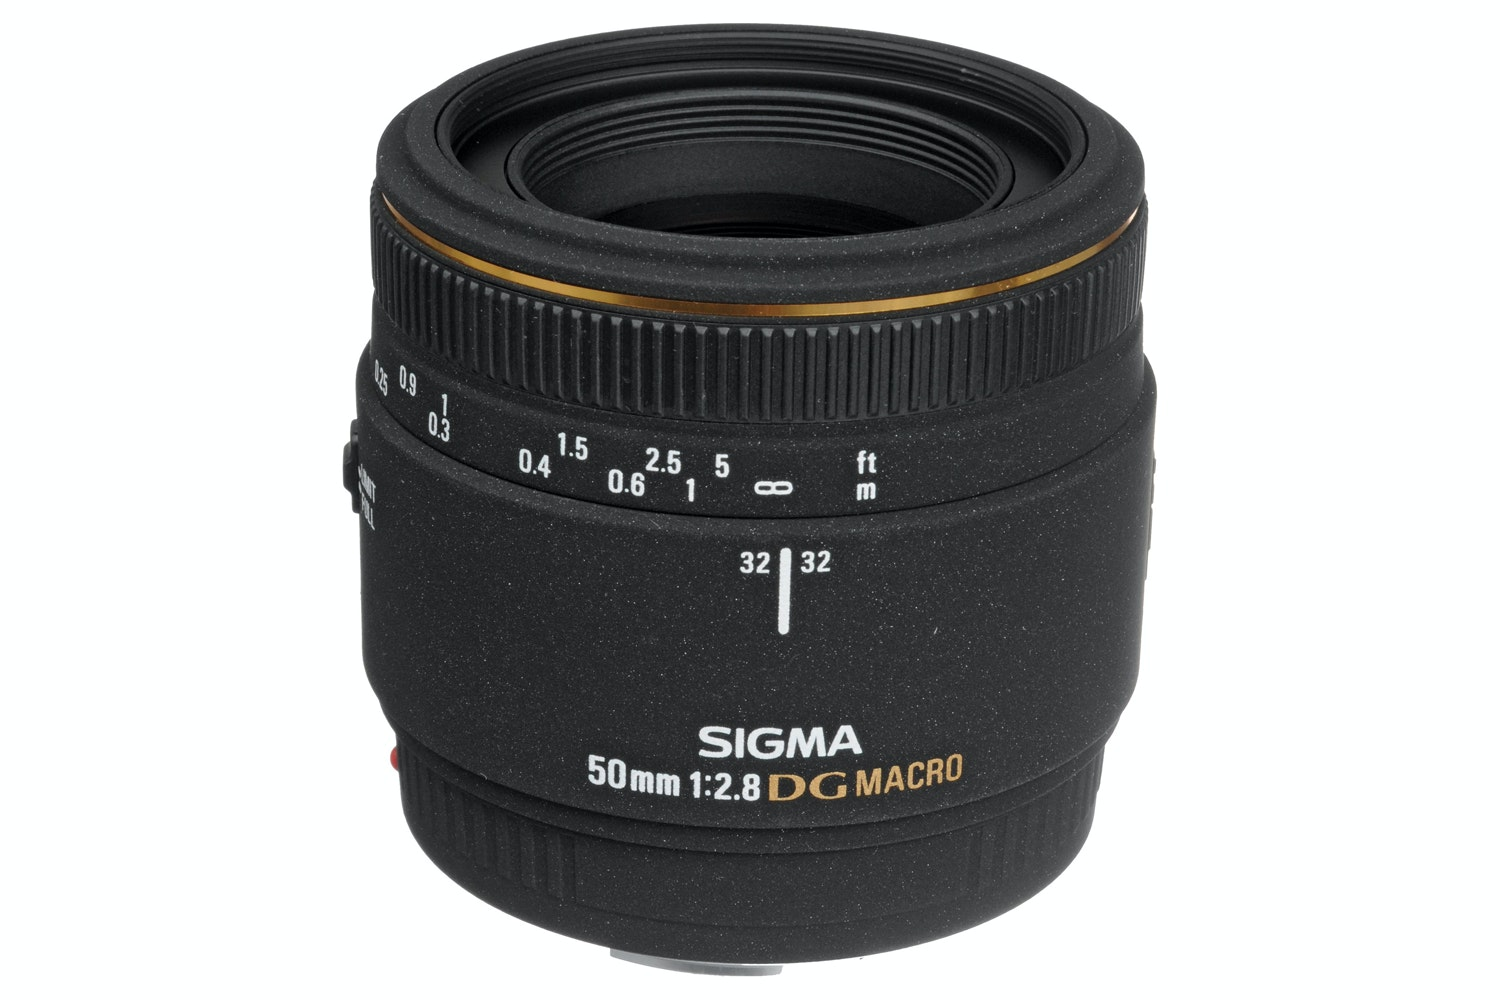 Sigma 50mm f2.8 EX DG Macro lens for Canon